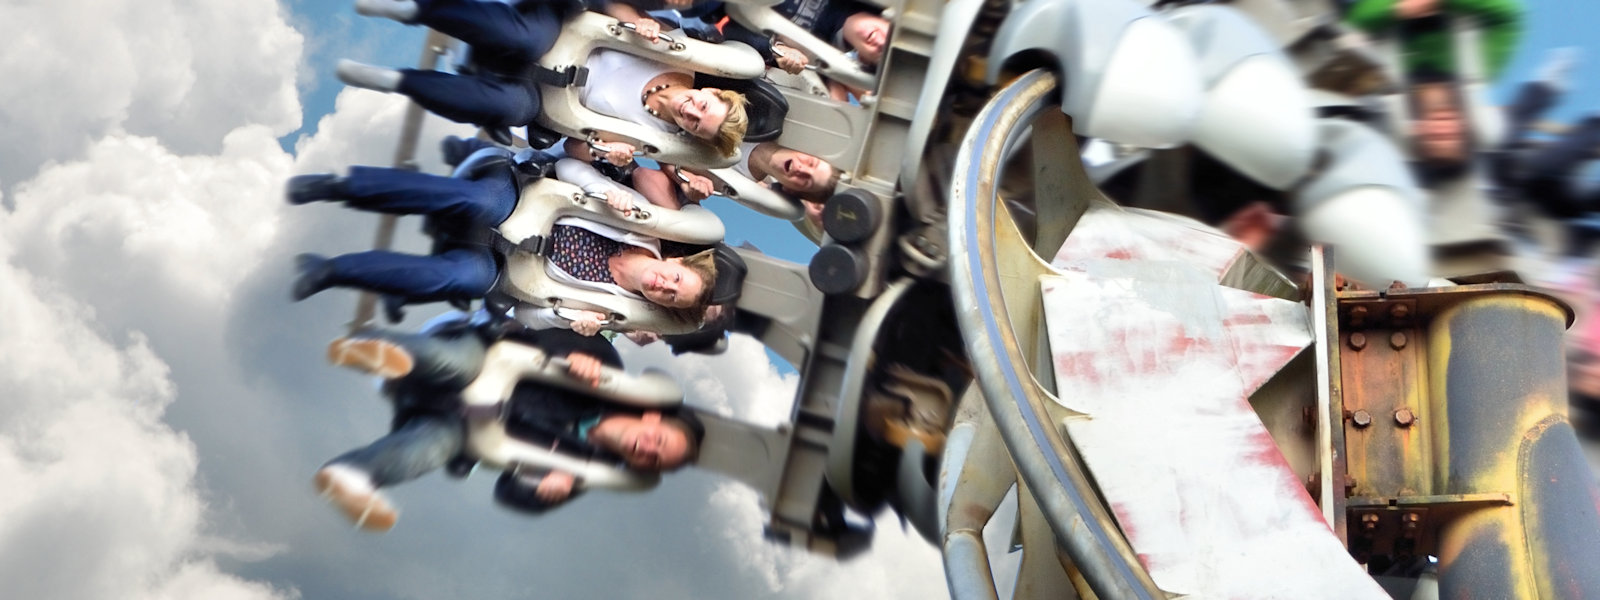 """Poetry In Motion"", Nemesis Ride, Alton Towers Resort, Staffordshire, UK"